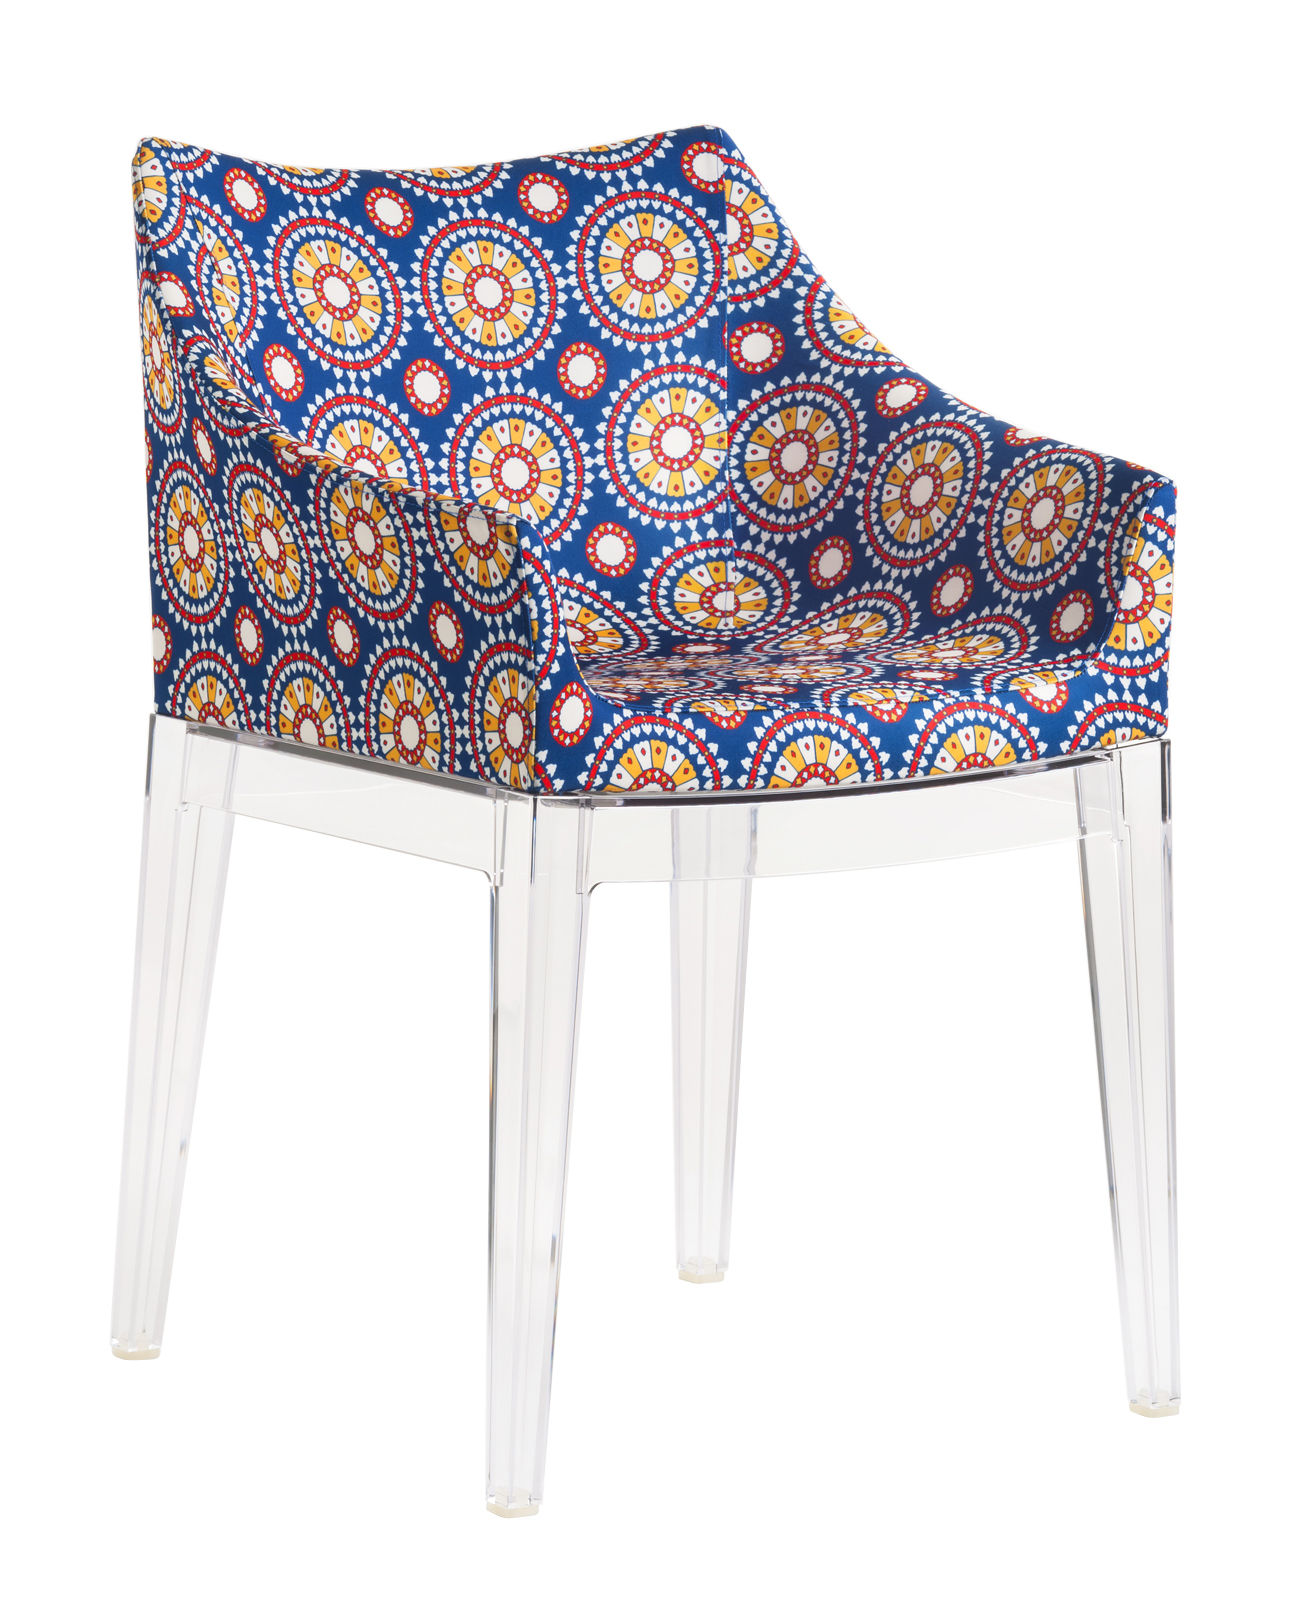 Furniture - Chairs - Madame La Double J Padded armchair - / Fabric by Kartell - Ruote fabric / Crystal legs - Fabric, Polycarbonate, Polyurethane foam